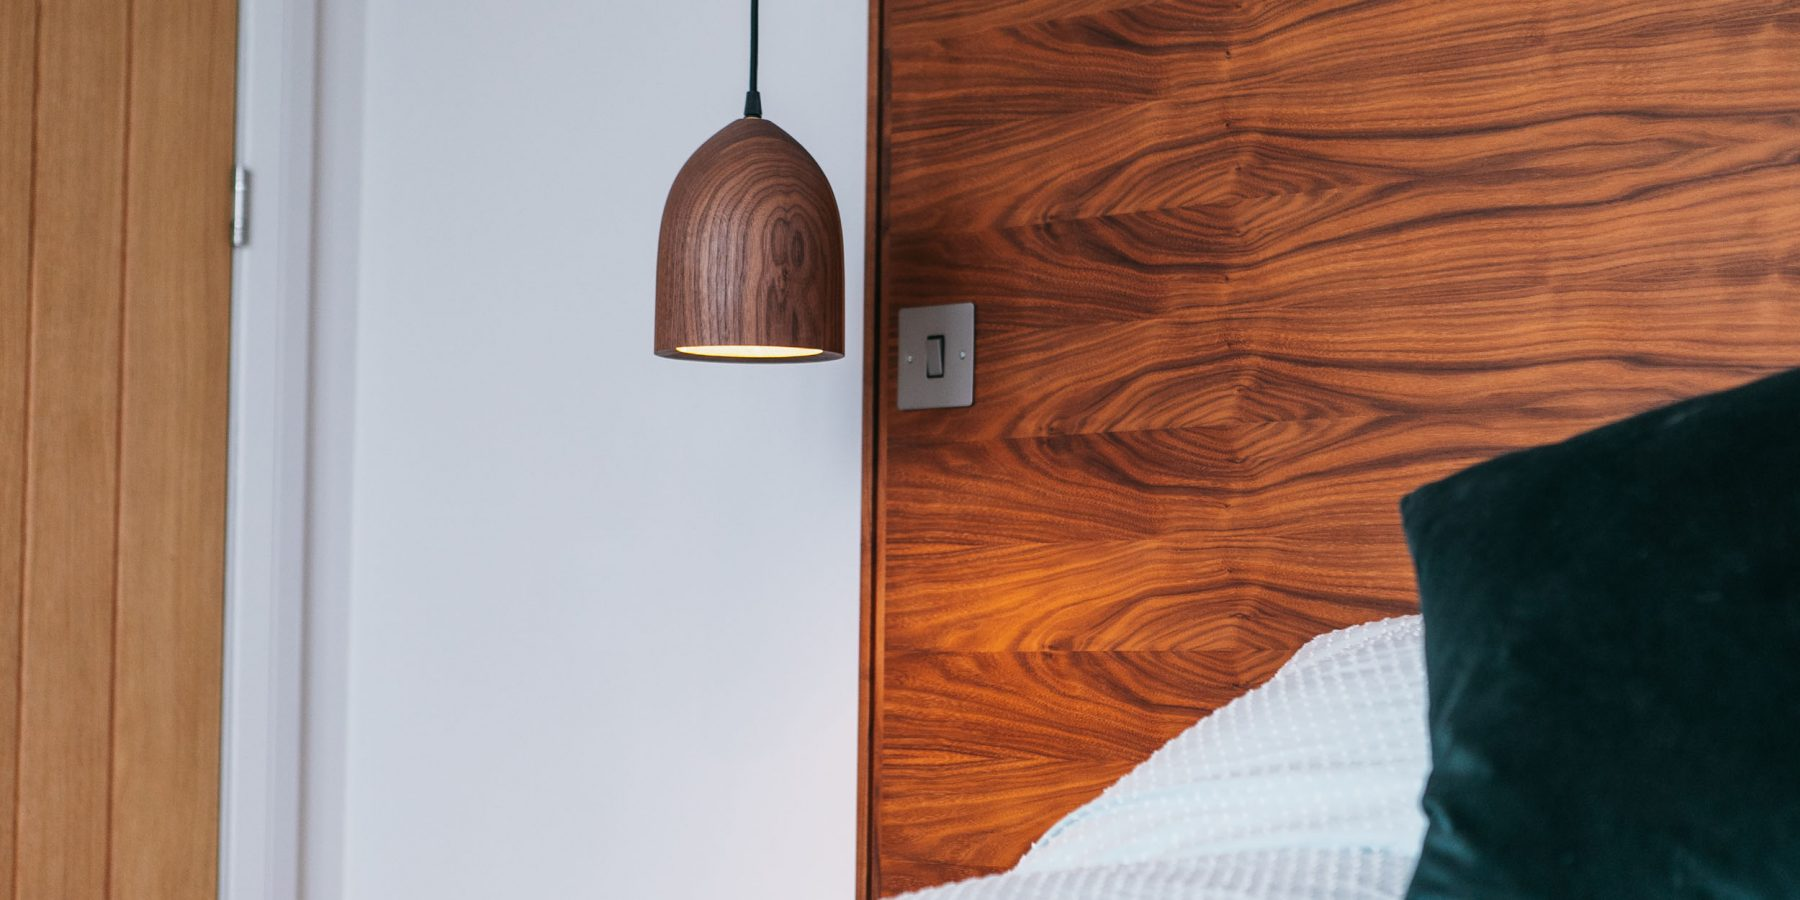 Thumbnail of http://Wood%20headboard%20and%20bedside%20lamp